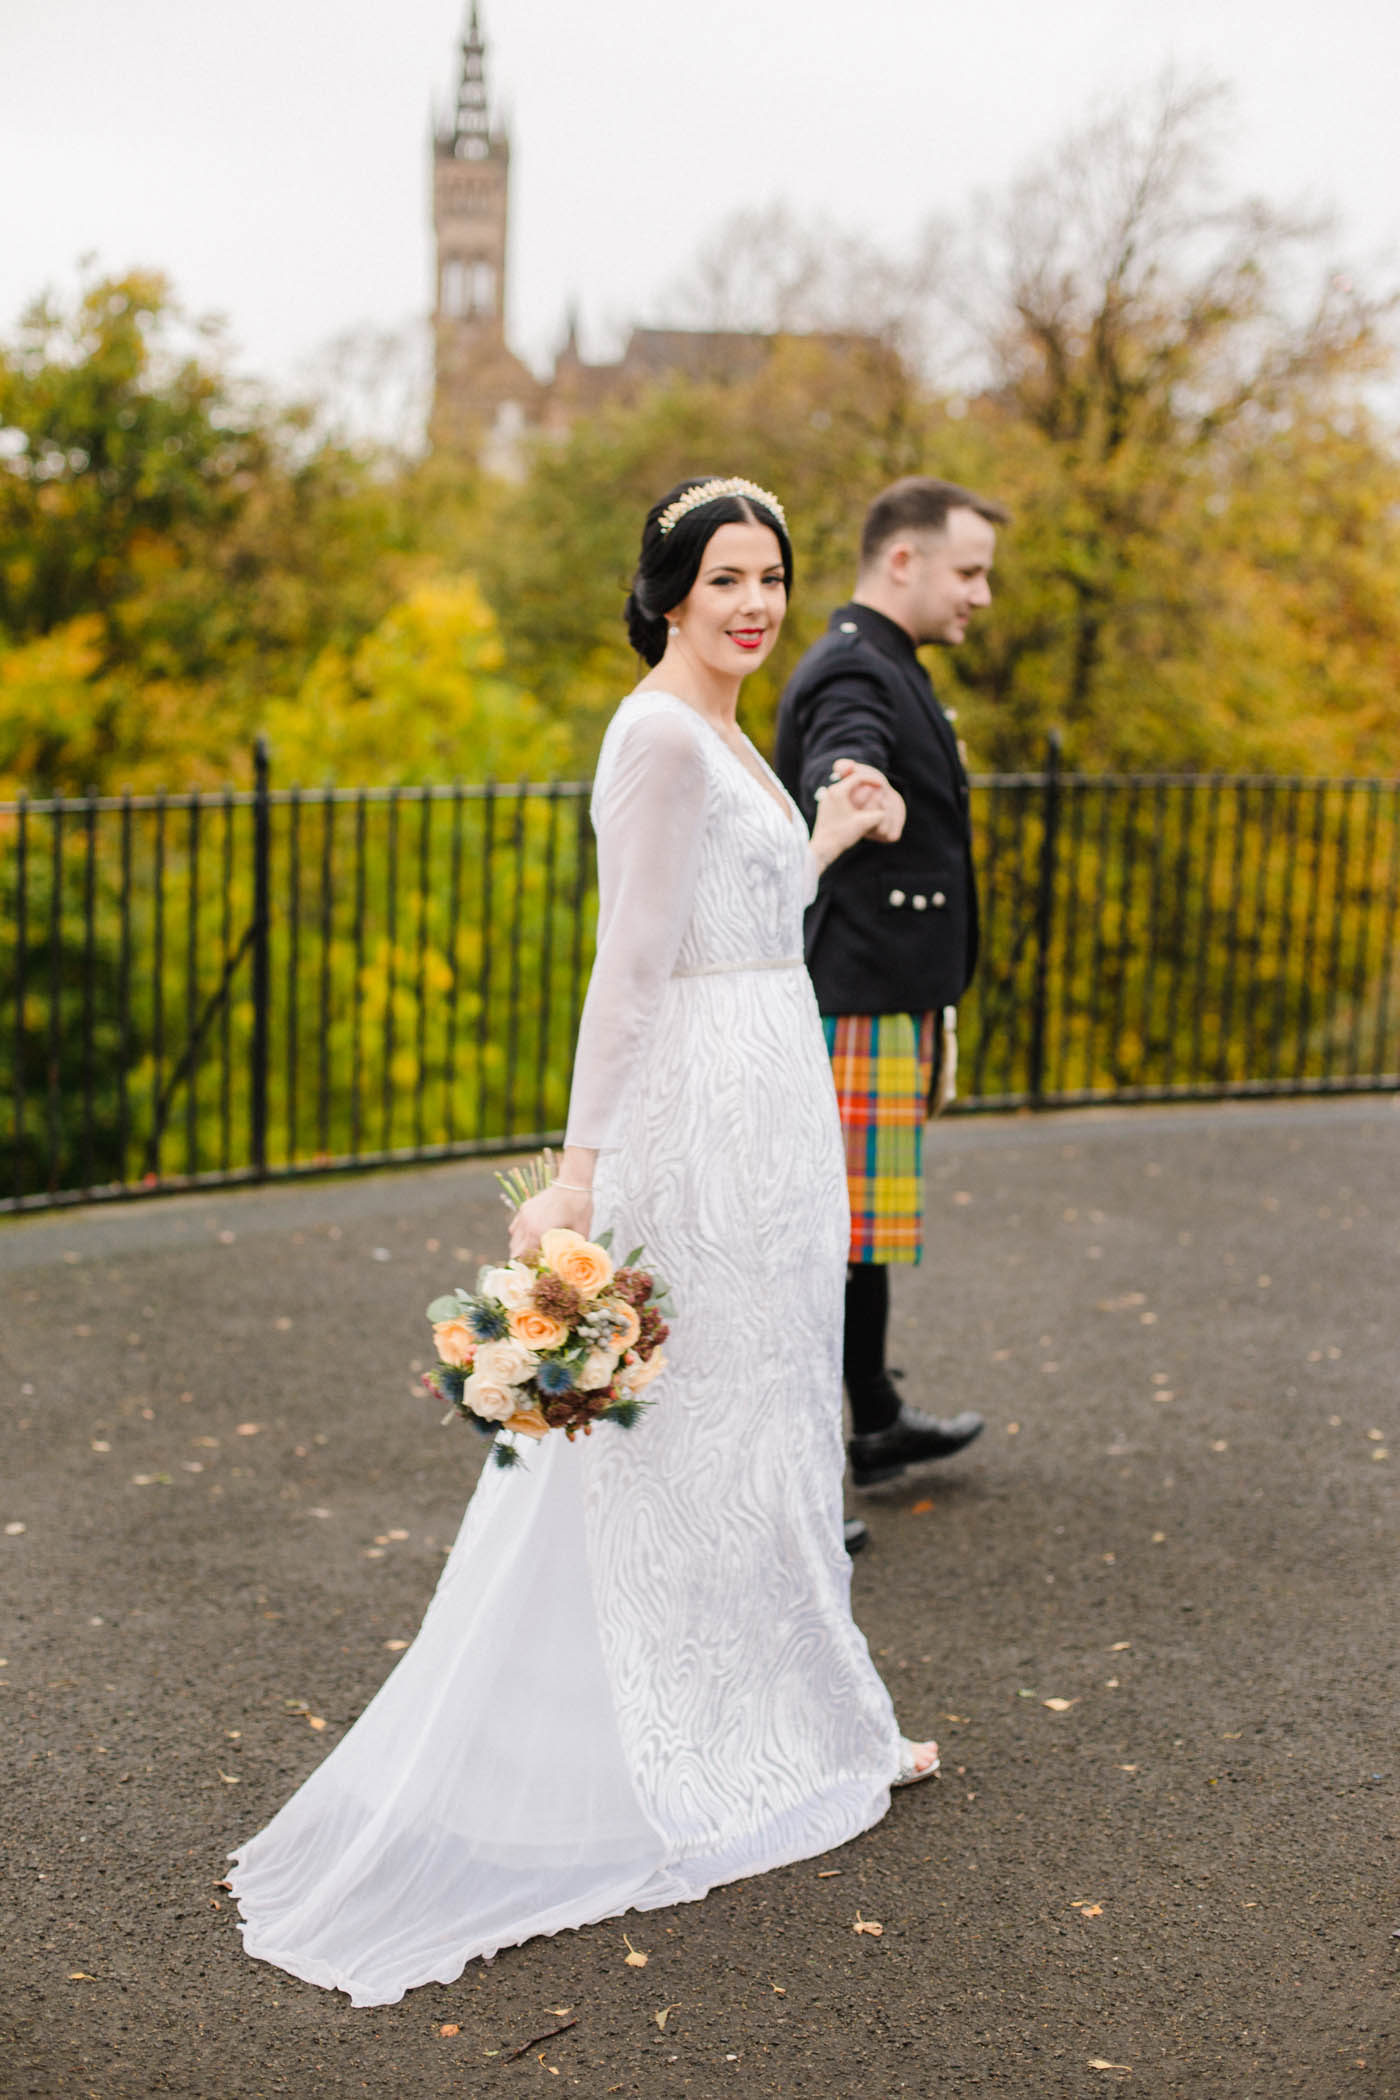 Kelvingrove Park wedding photography | Vintage Scottish wedding in yellow and thistle